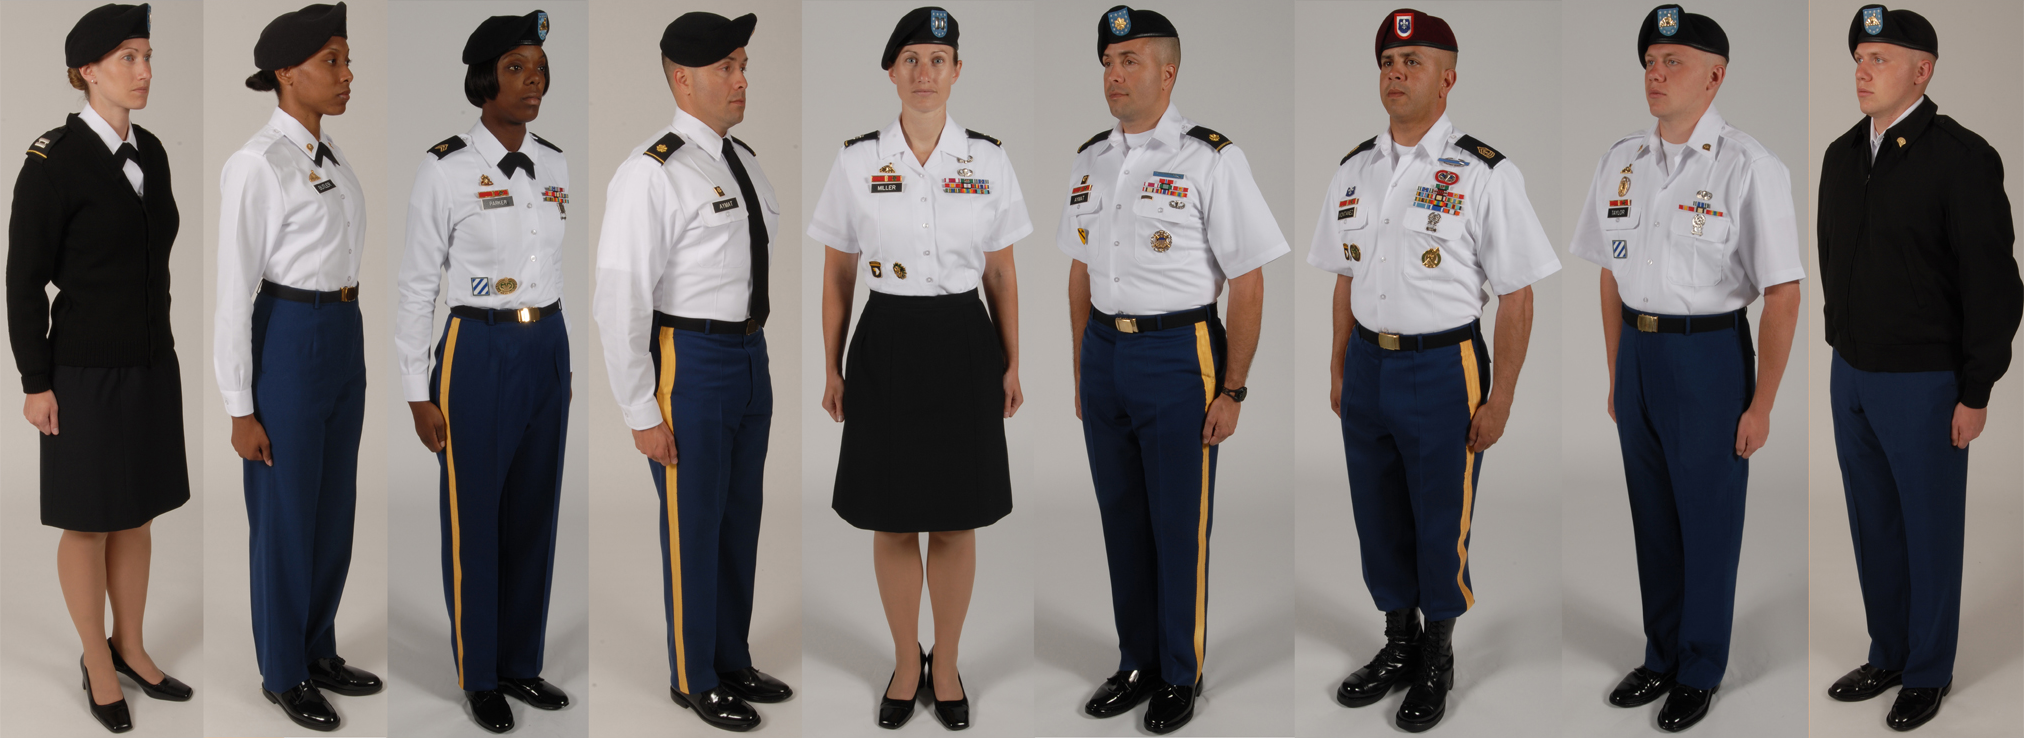 Uniform dating usa